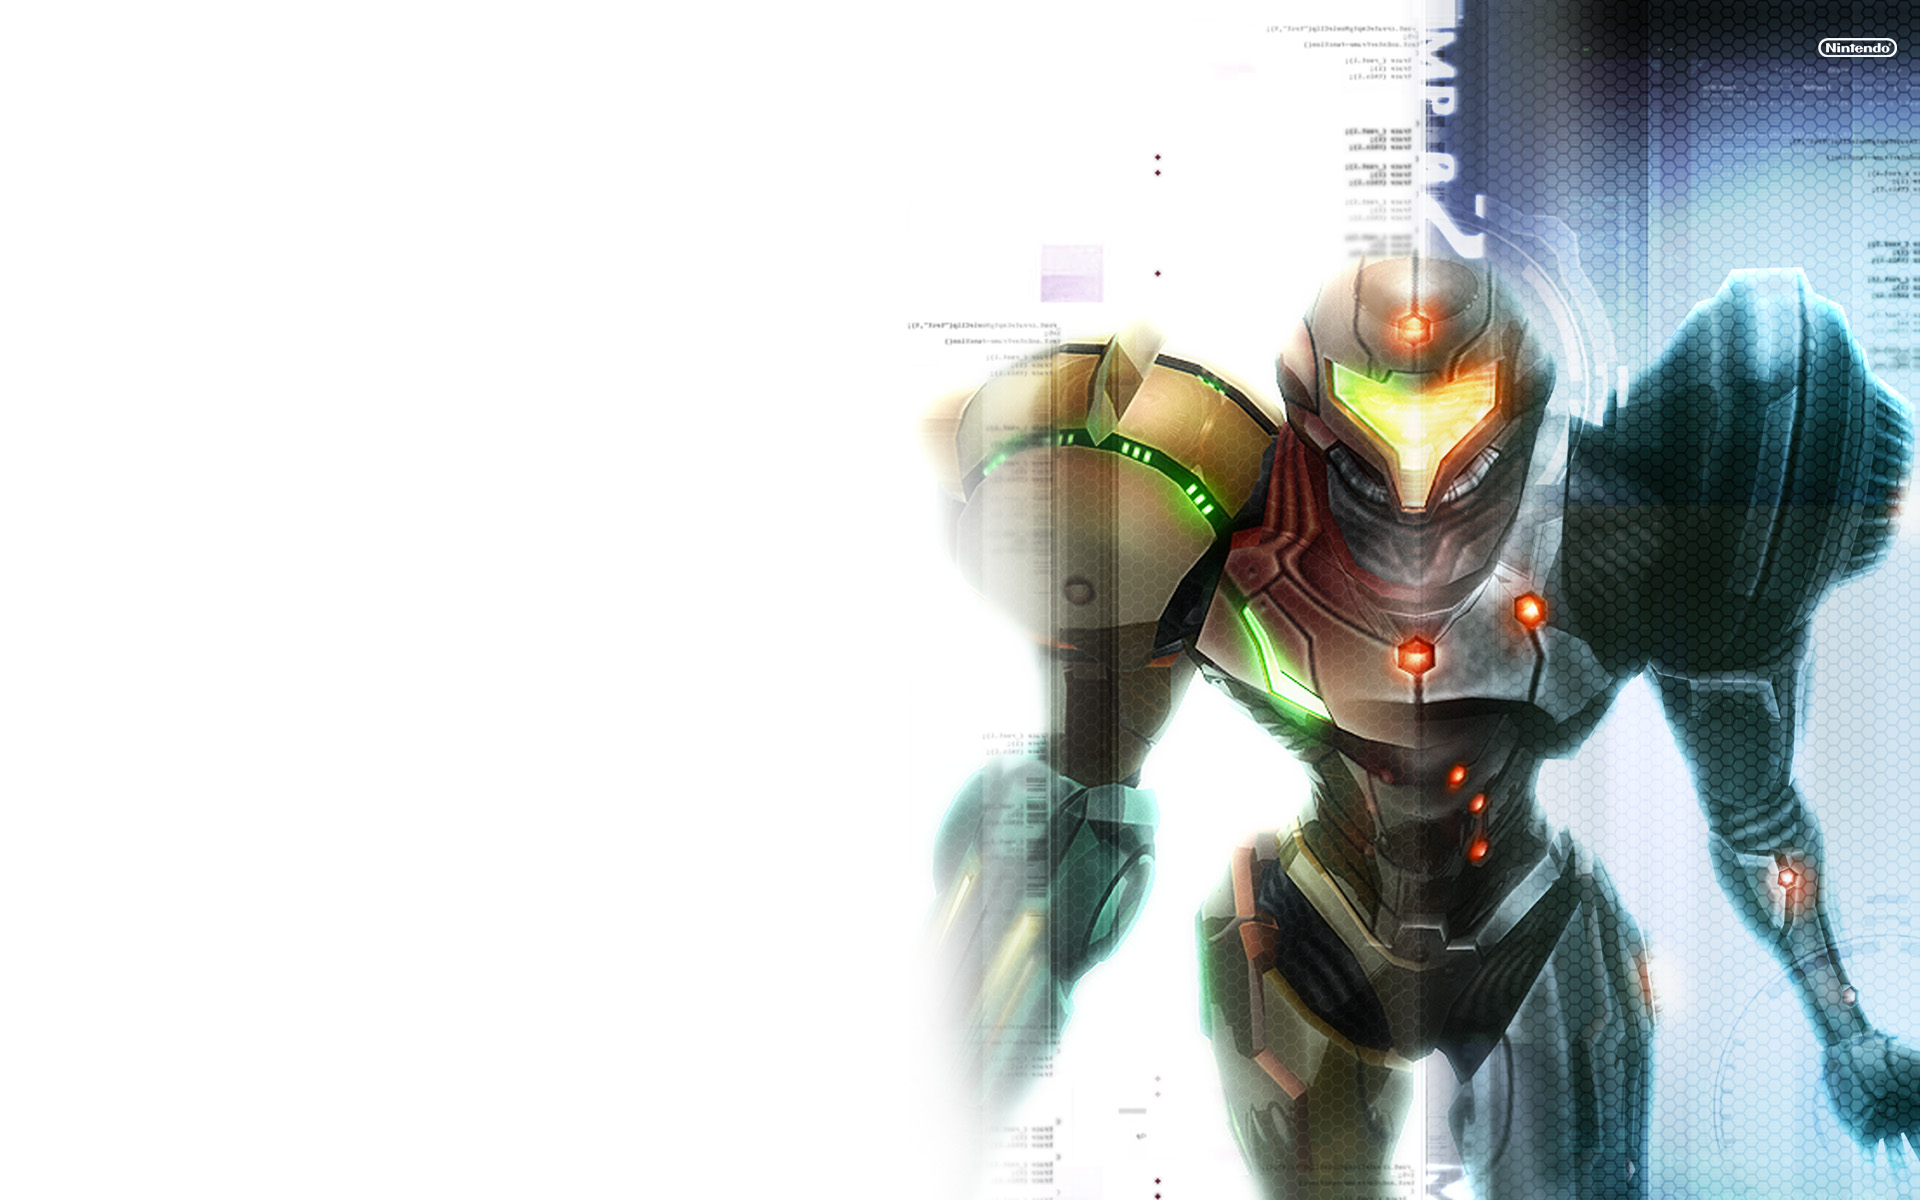 Here's the largest one: http://metroid.com/primetrilogy/imgs/media/01_1920x1200_wallpaper.jpg